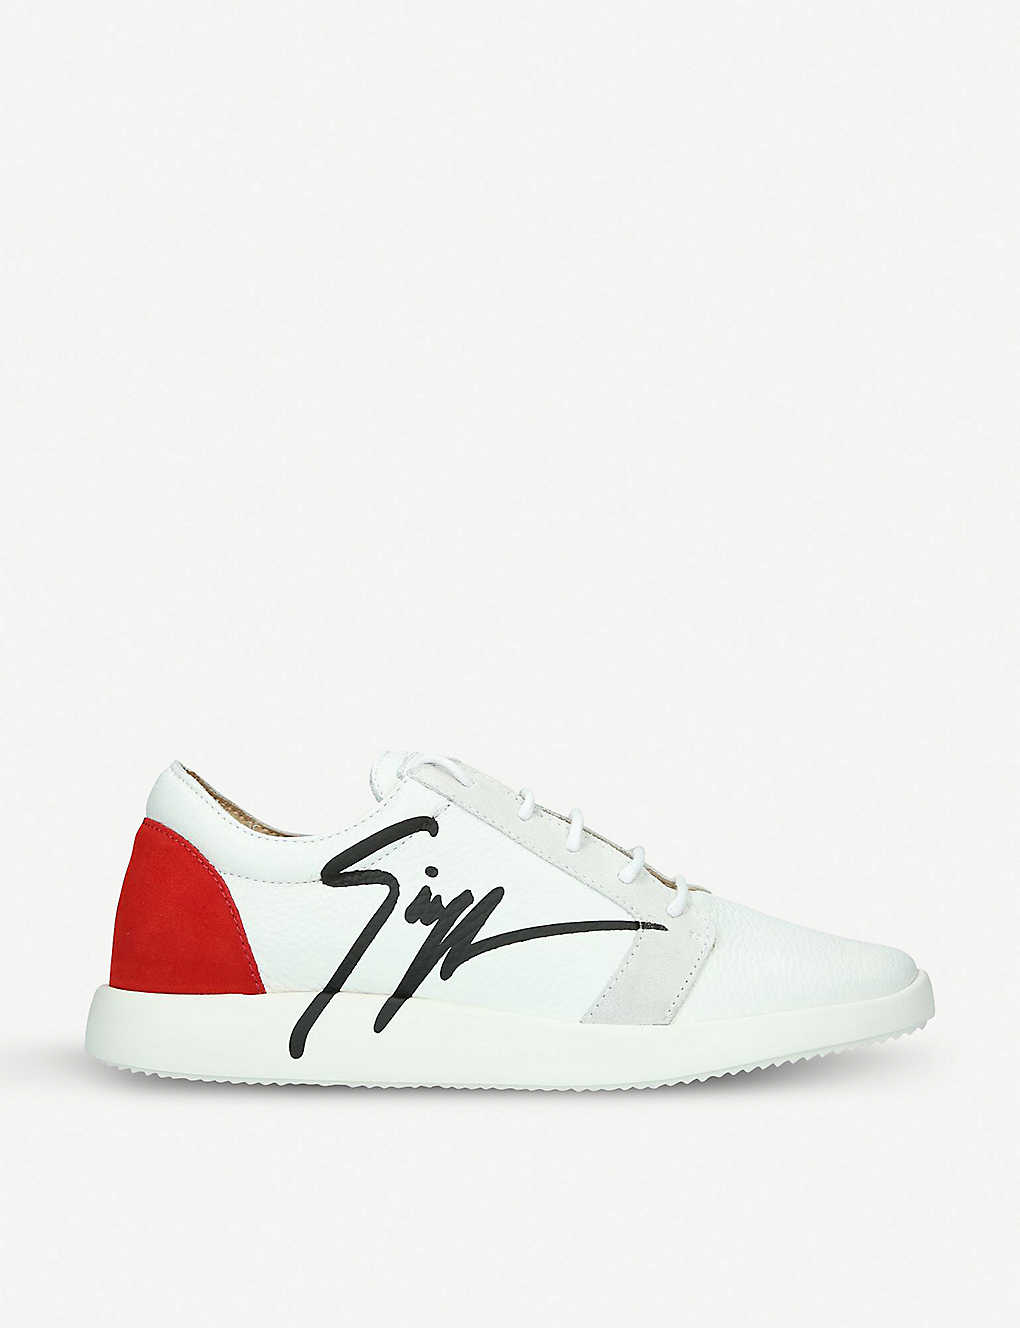 0555a5e02f09 Giuseppe Zanotti G Runner leather and suede sneakers Latest Best ...